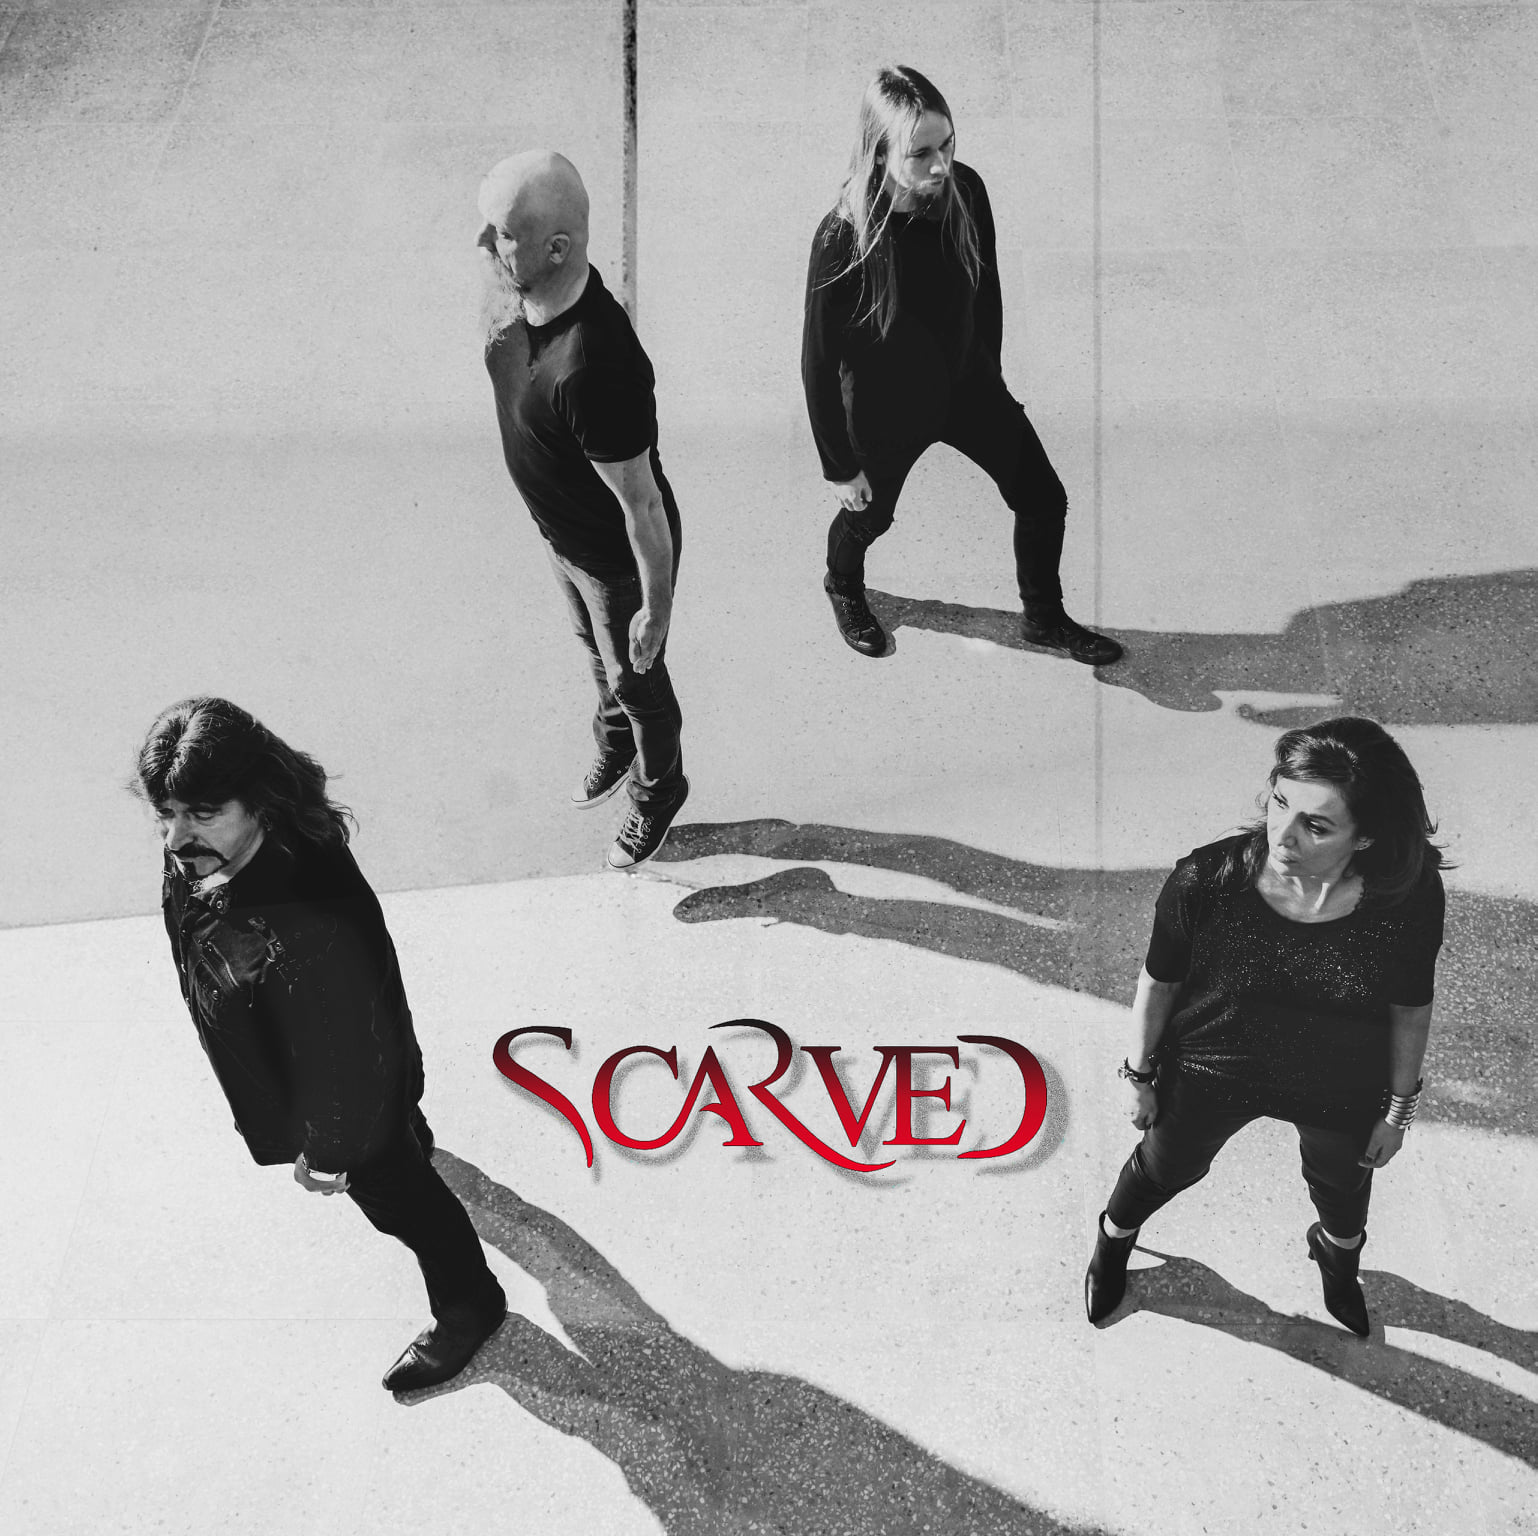 SCARVED - band